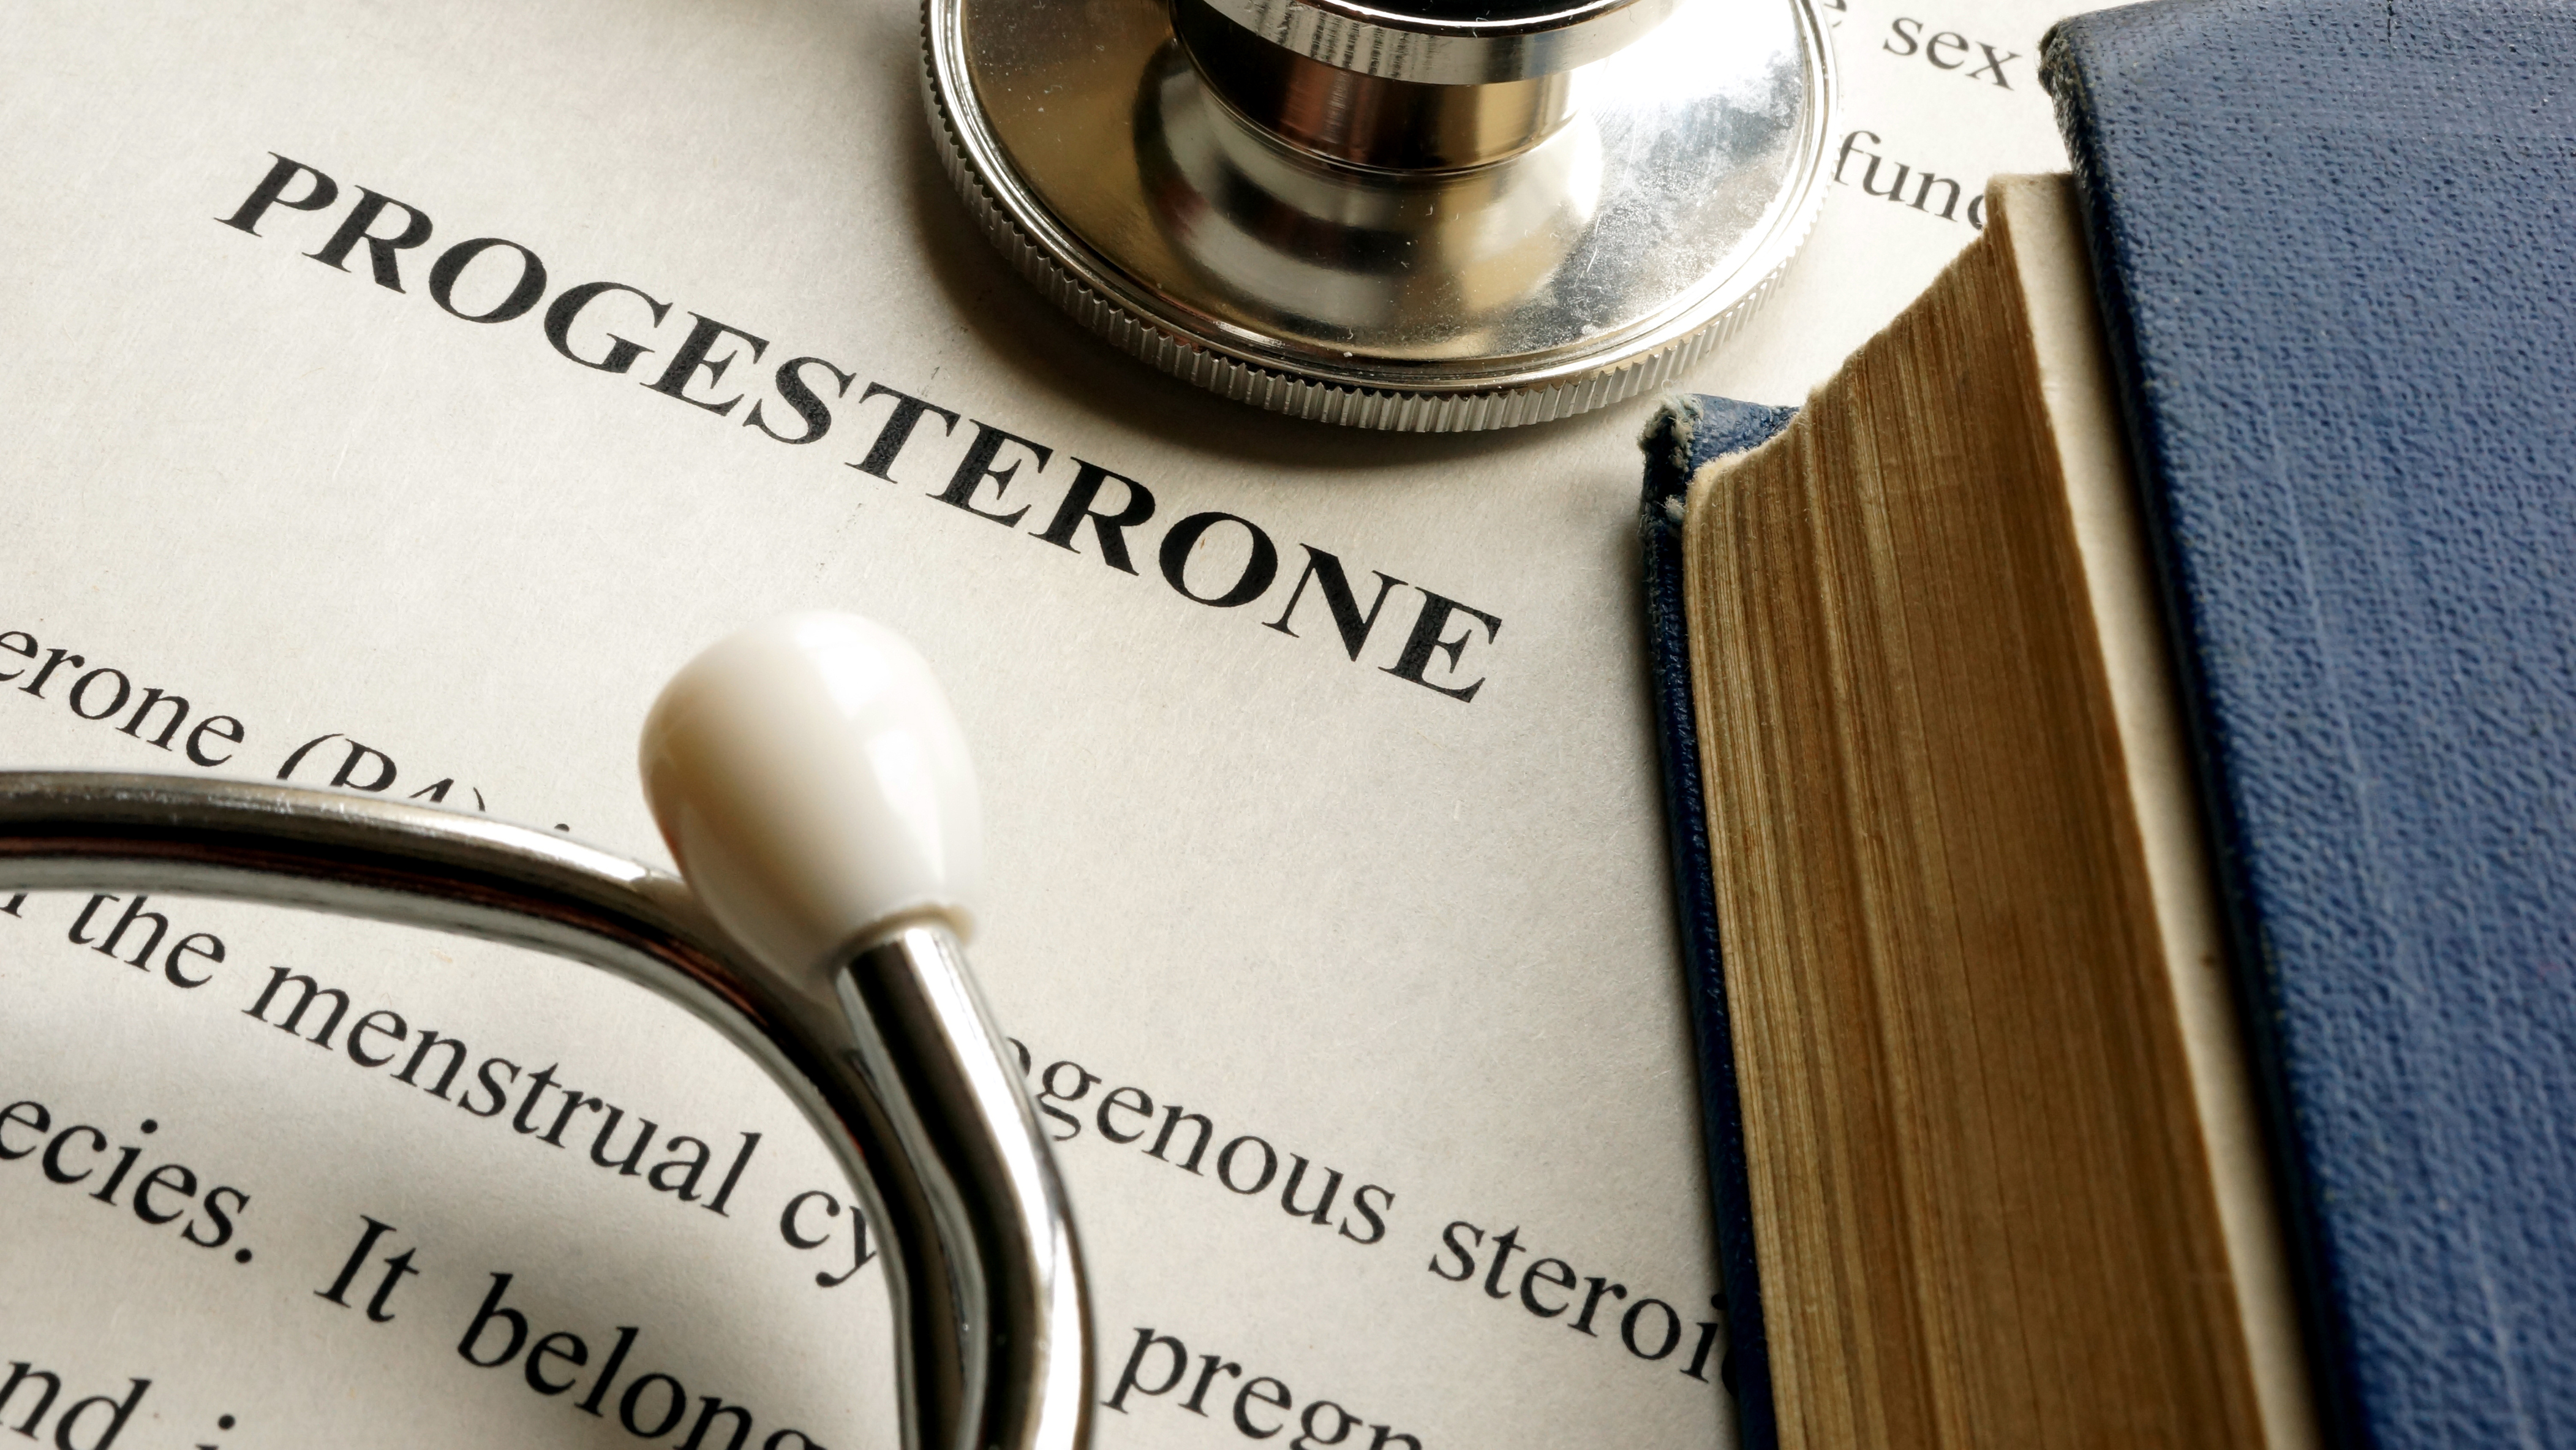 Progesterone - The Natural Protector